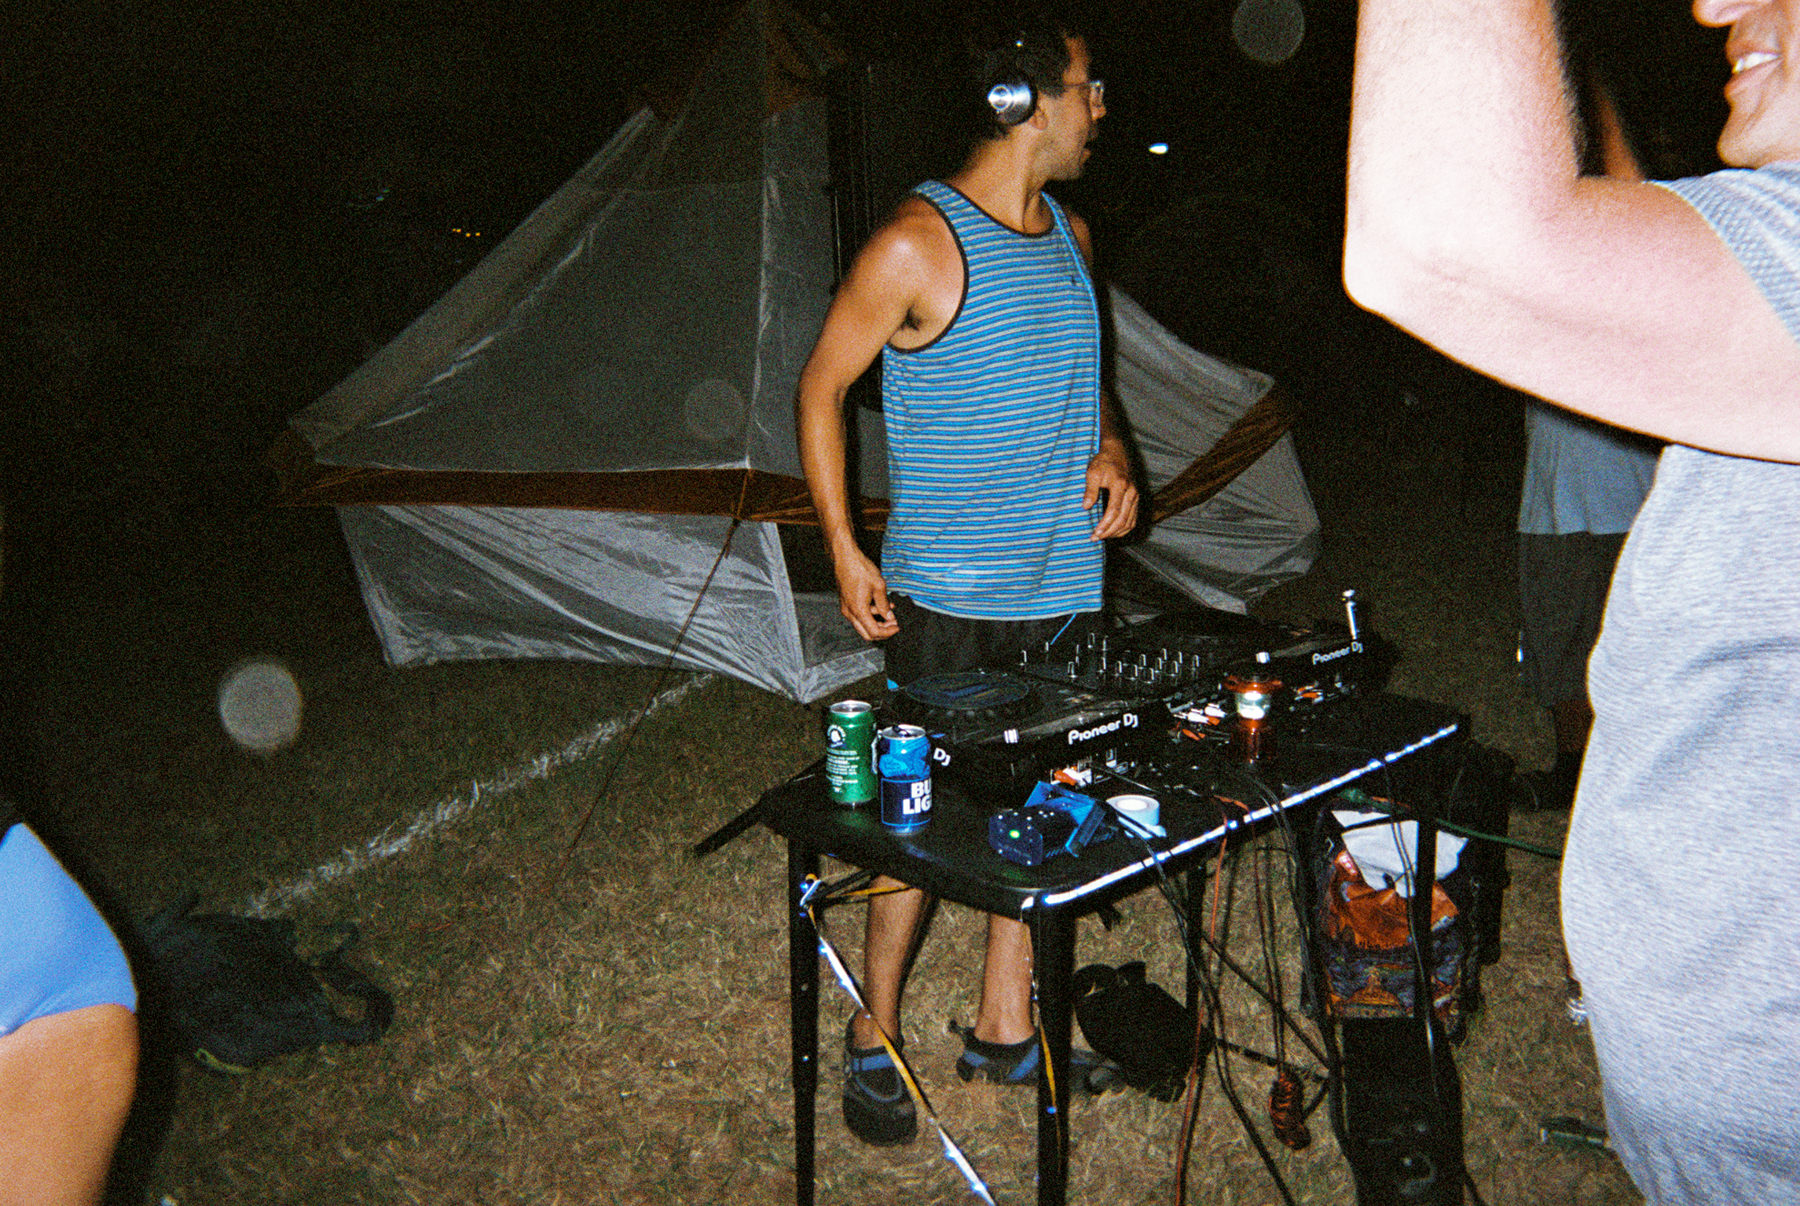 180728-kirby-gladstein-photograpy-Float-Fest-Fuji-disposable-008.jpg